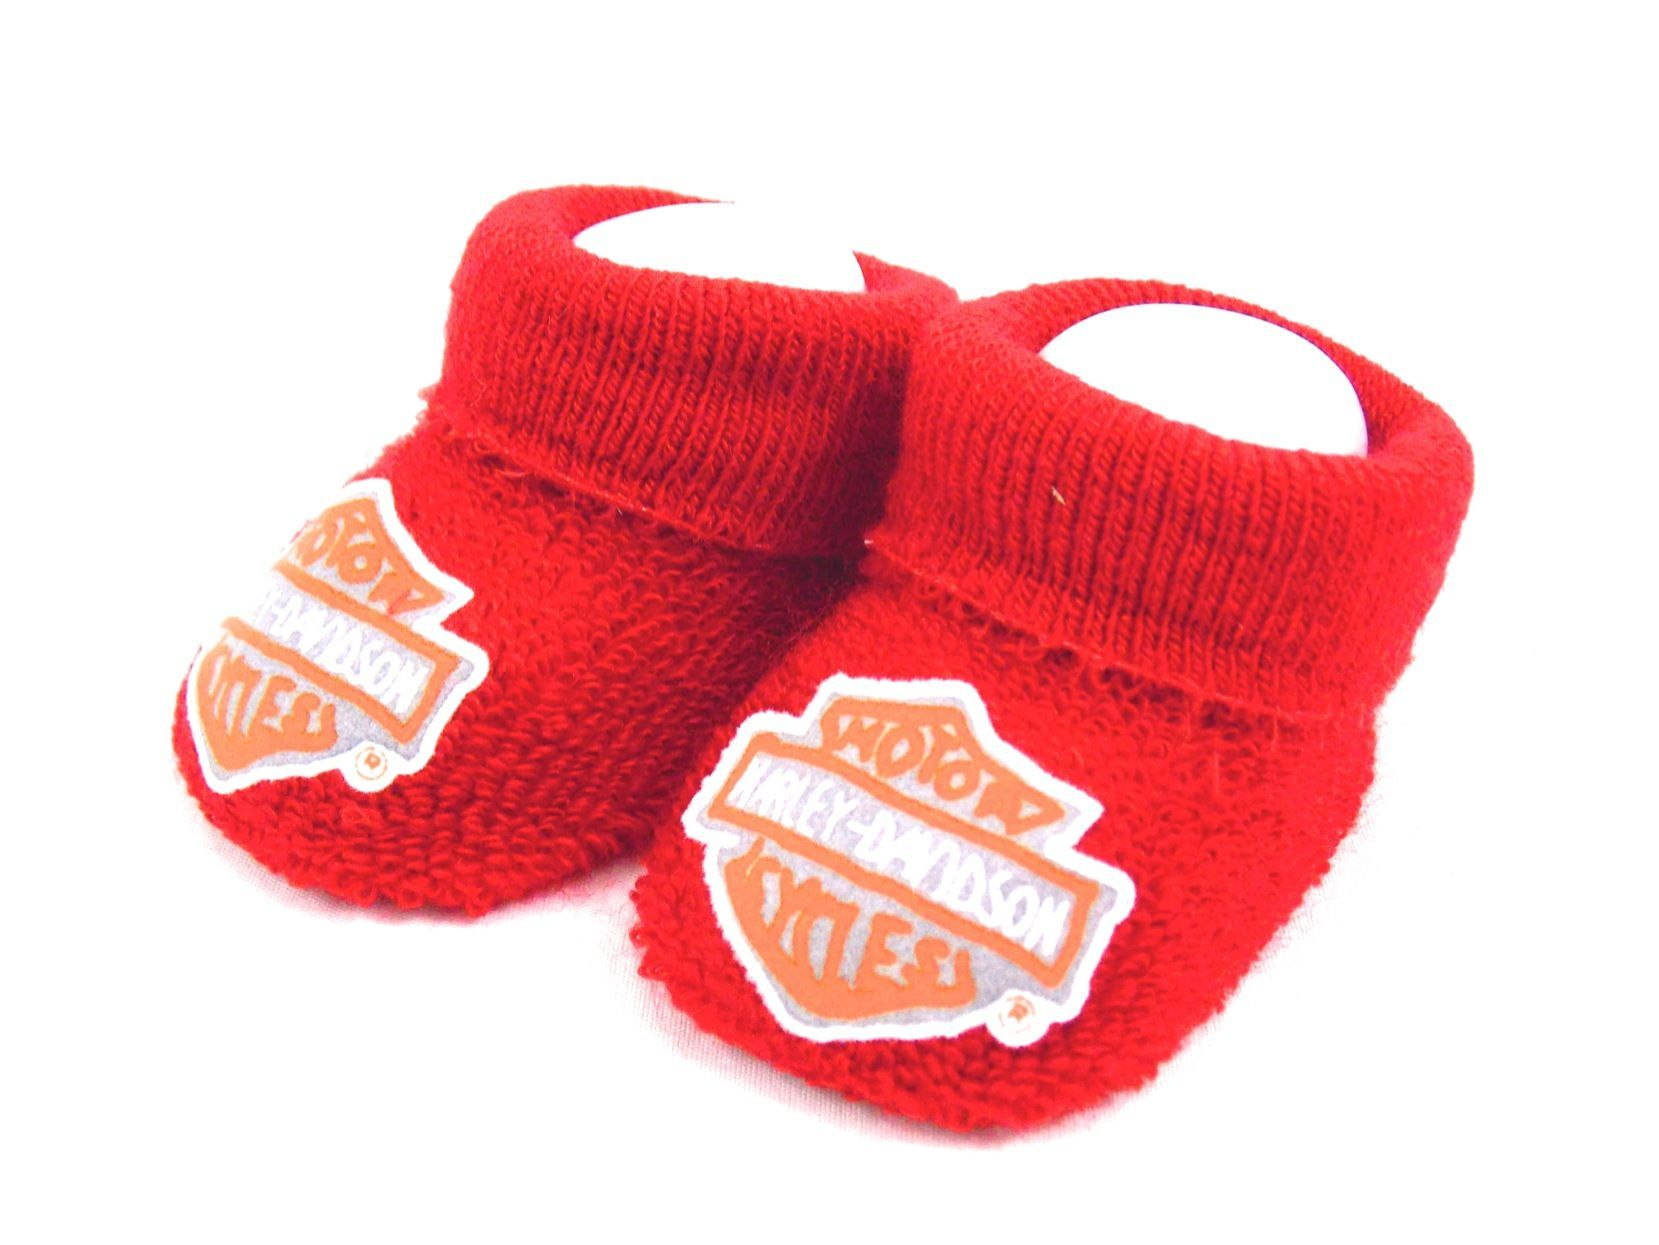 Harley Davidson Chausson Booties Bebe Born To Ride Biker Size 0 3 M